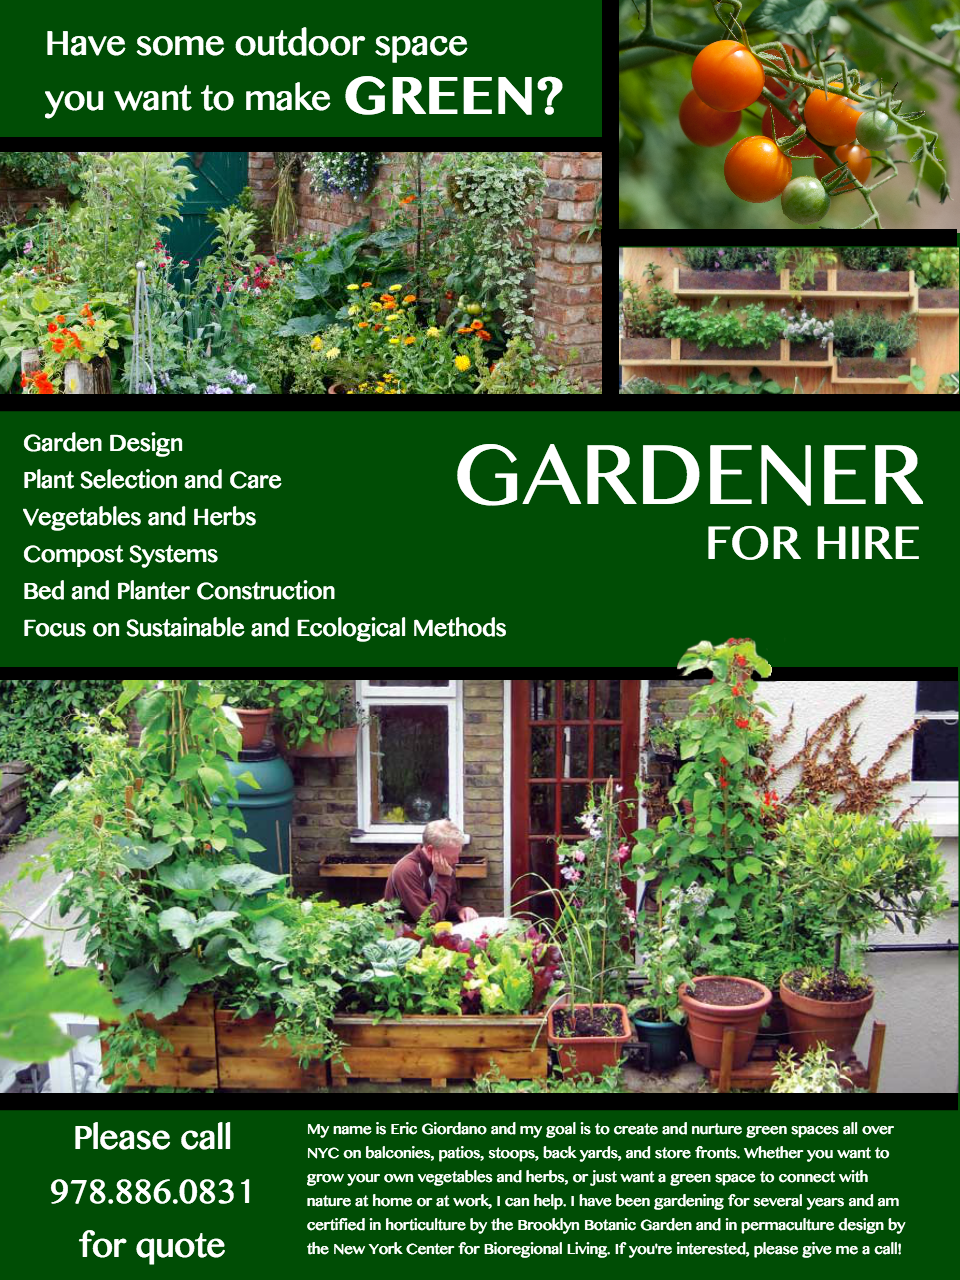 Would Love Some Feedback On This Flyer I Made For Gardening Services Garden